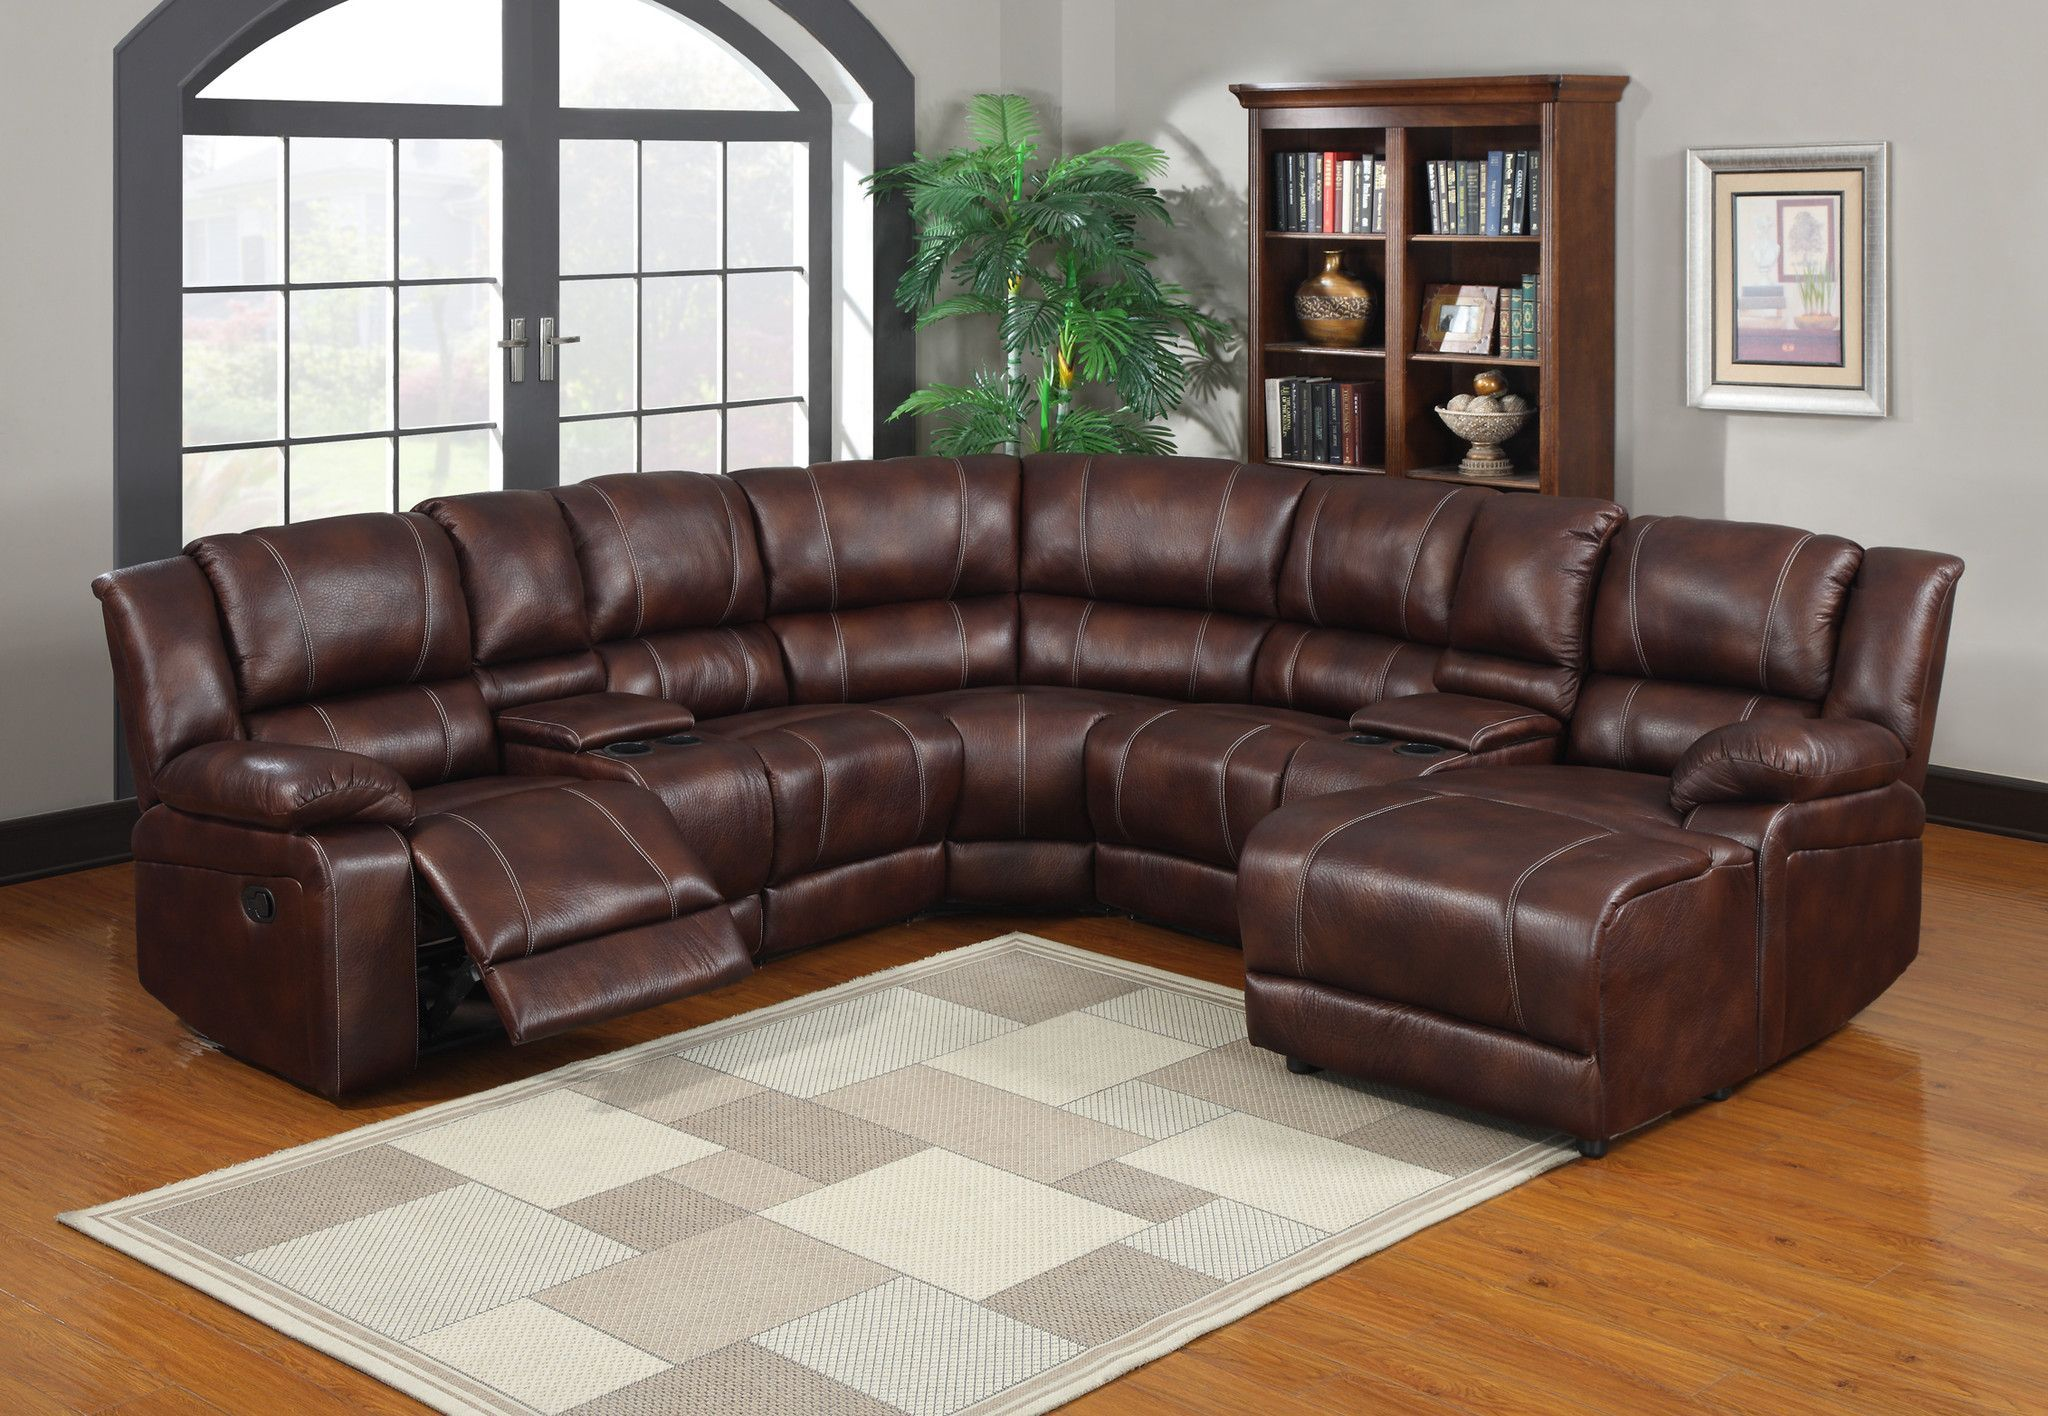 Best Classic Brown Leather Sectional Sectional Sofa 400 x 300